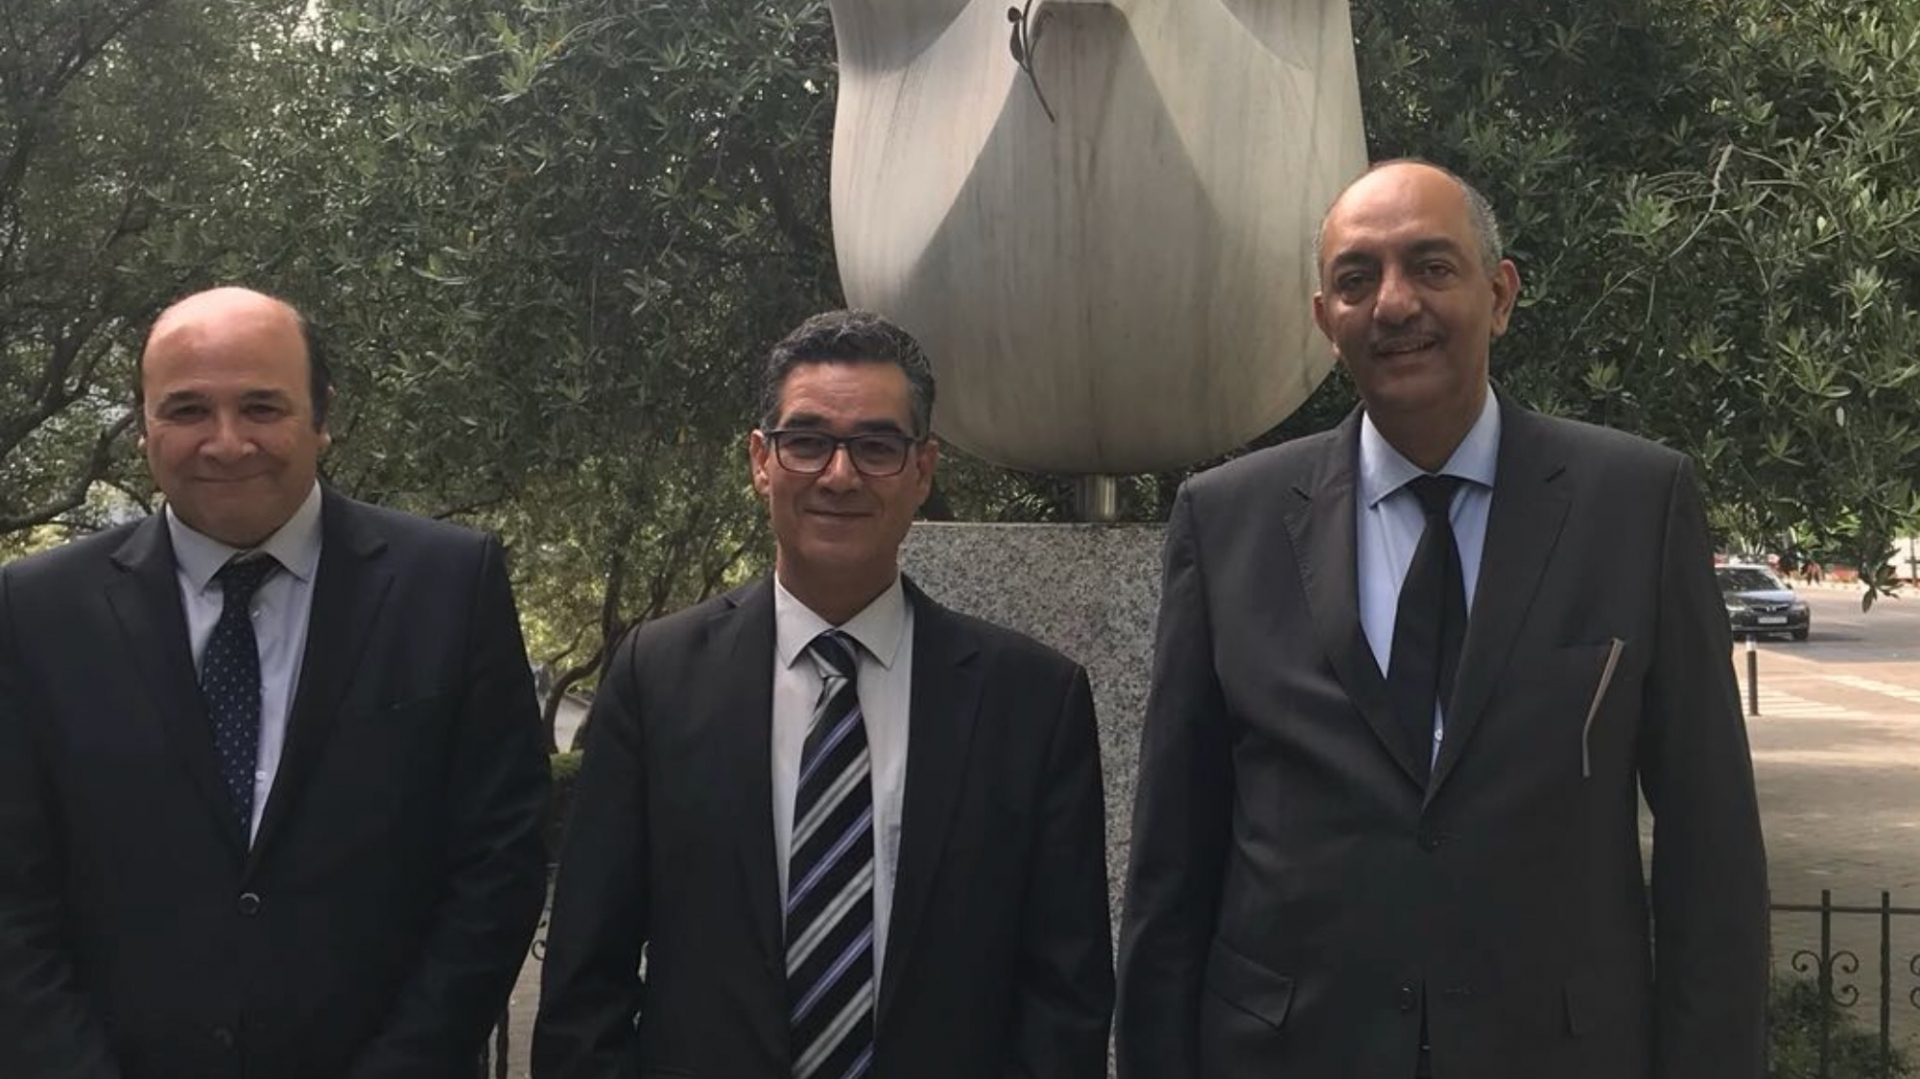 The Executive Director of the International Olive Council, Abdellatif Ghedira, makes an official visit to Cairo